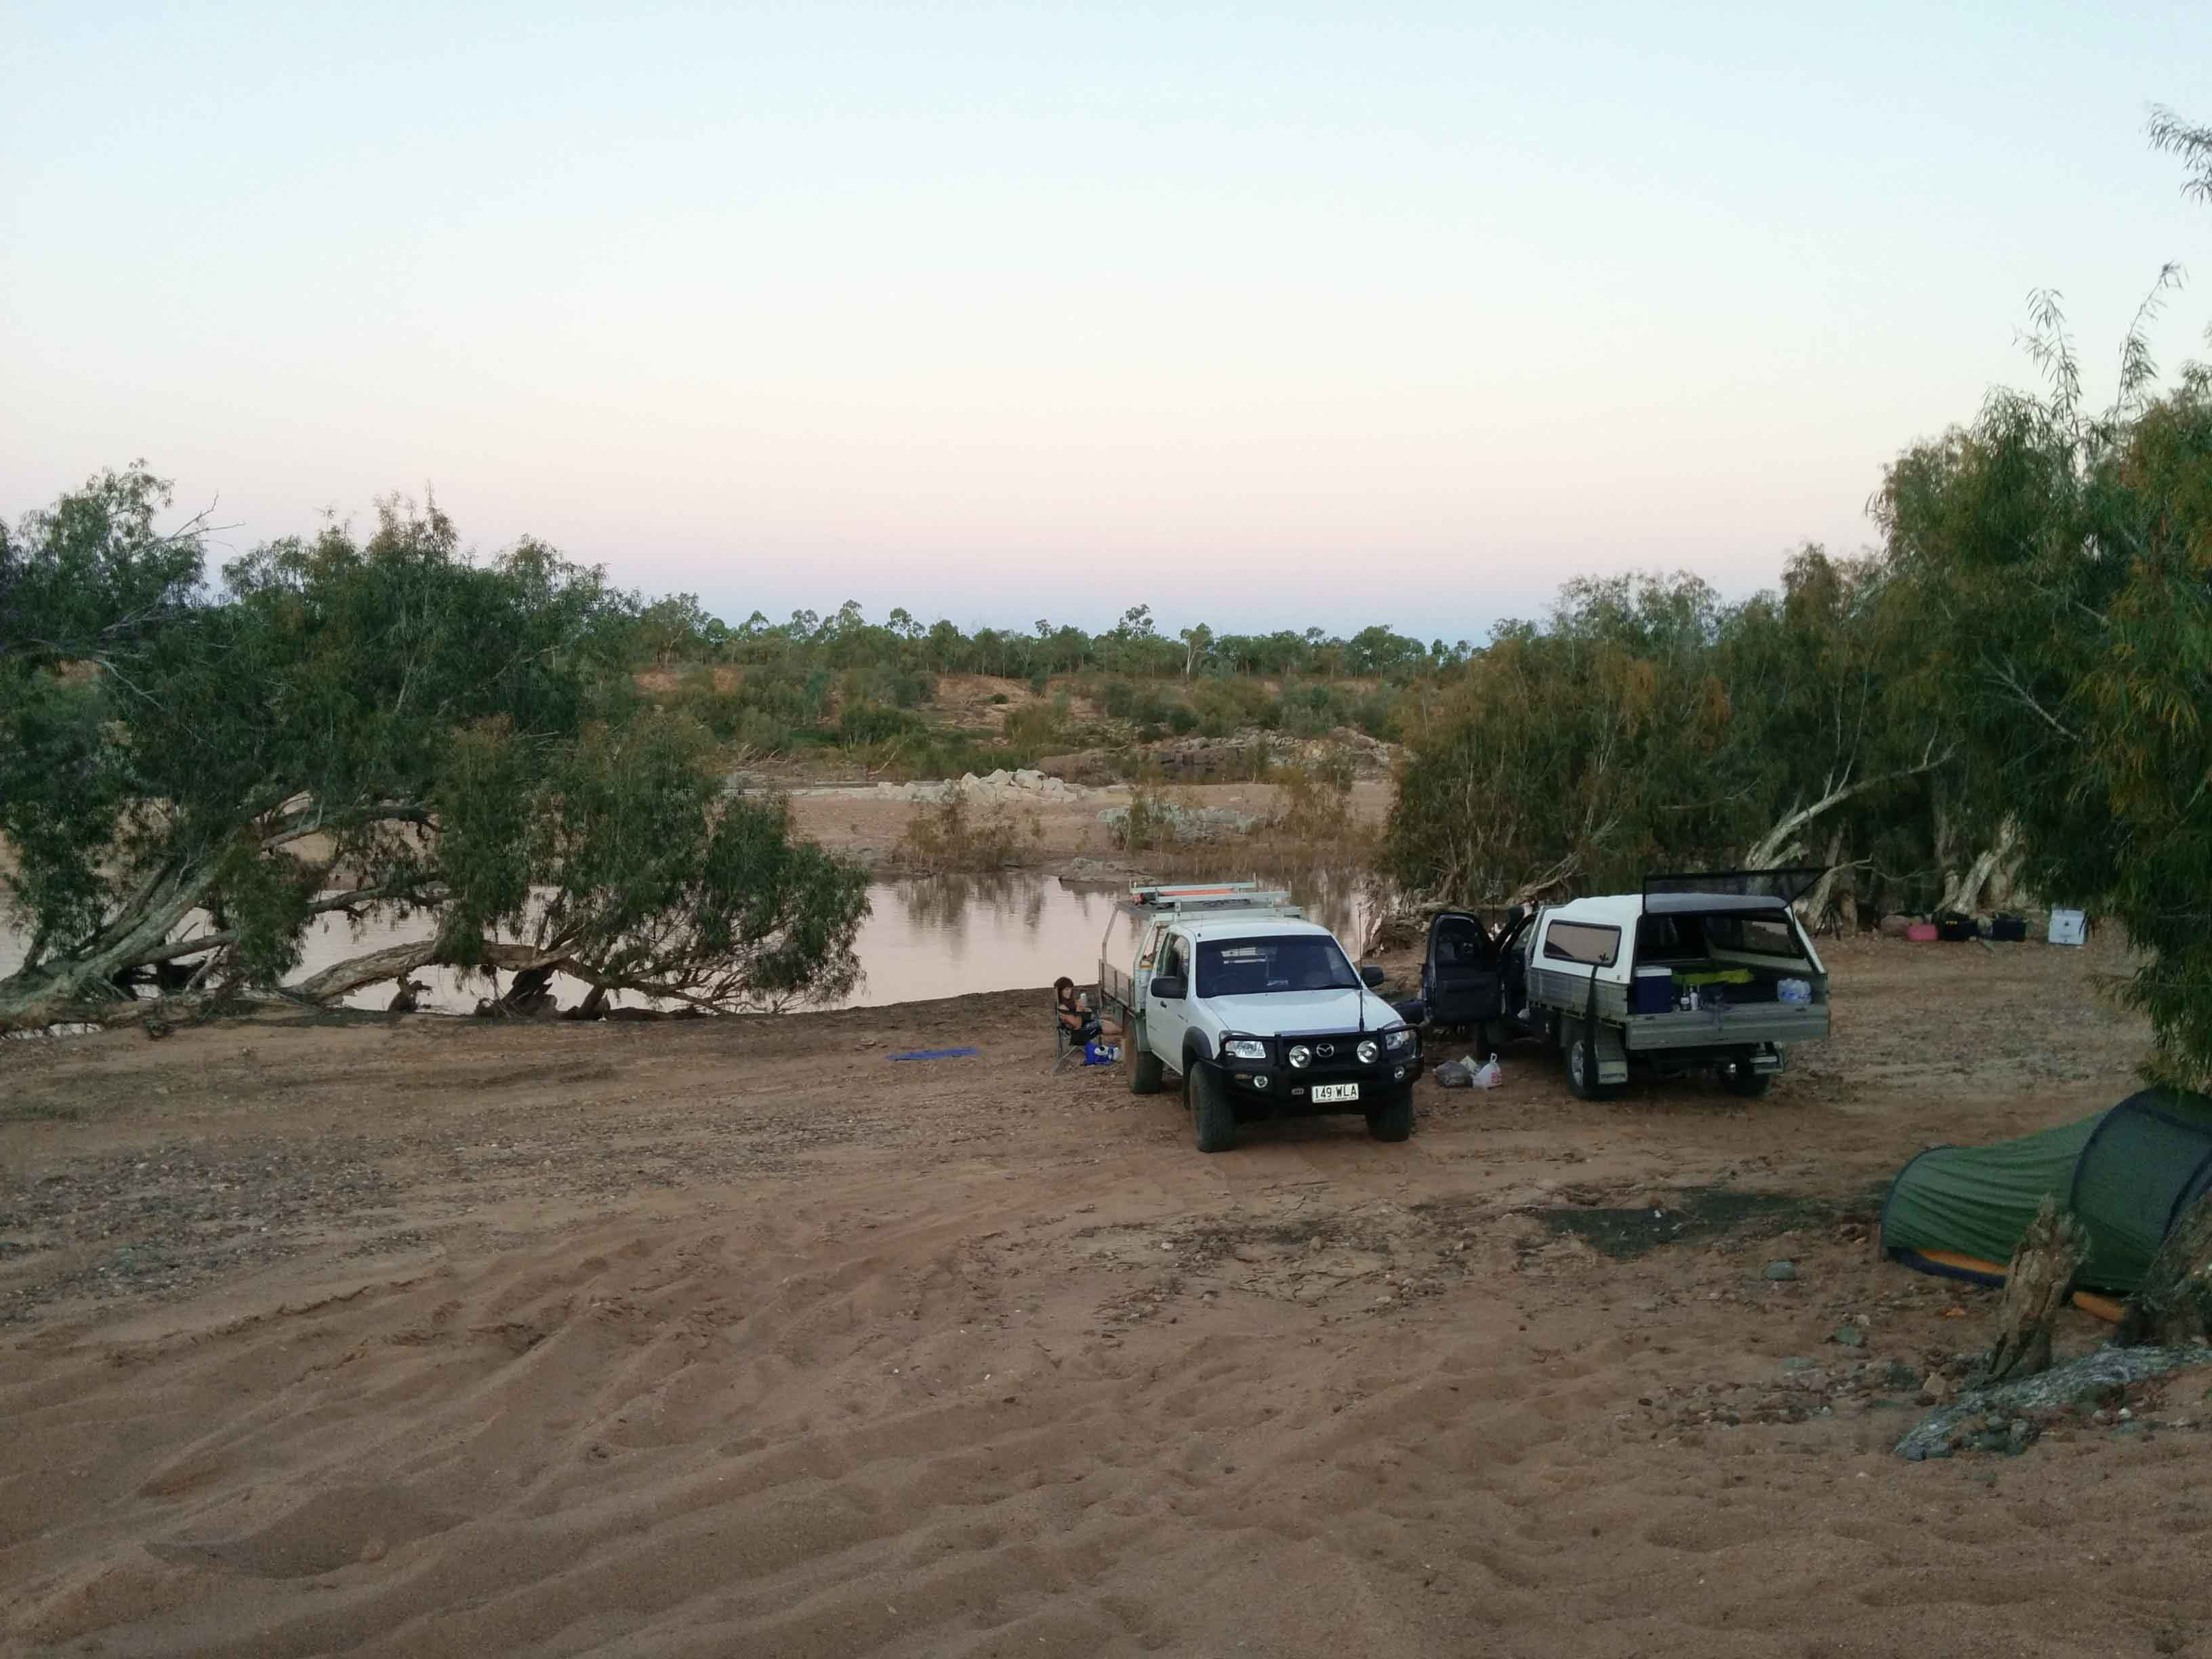 Camping by the Burdekin River